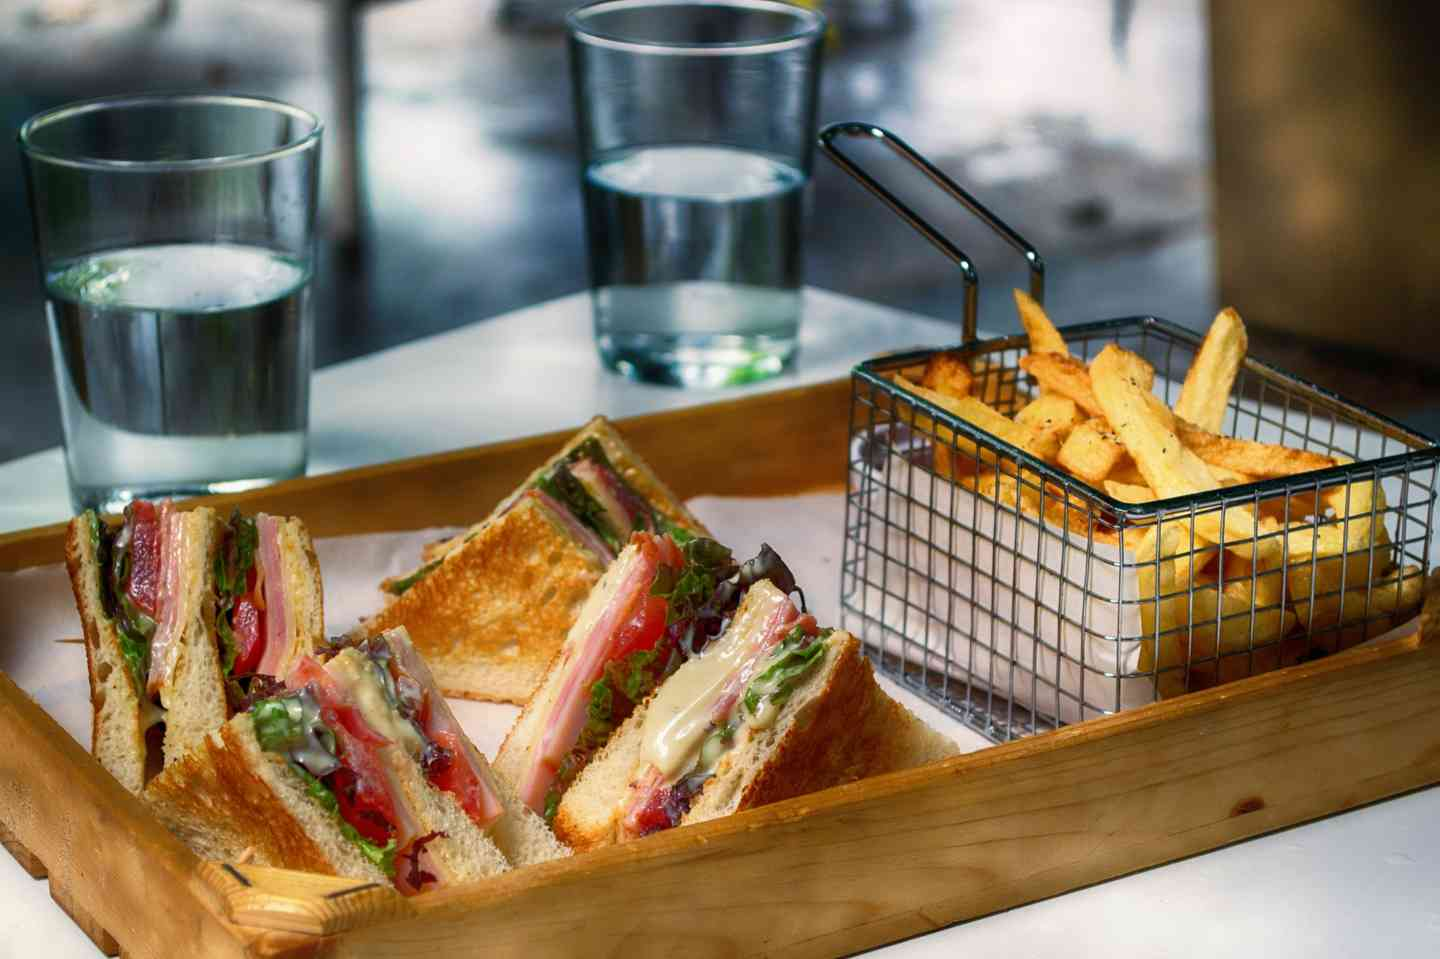 Wooden tray with a variety of sandwiches and a metal serving fry basket of fries